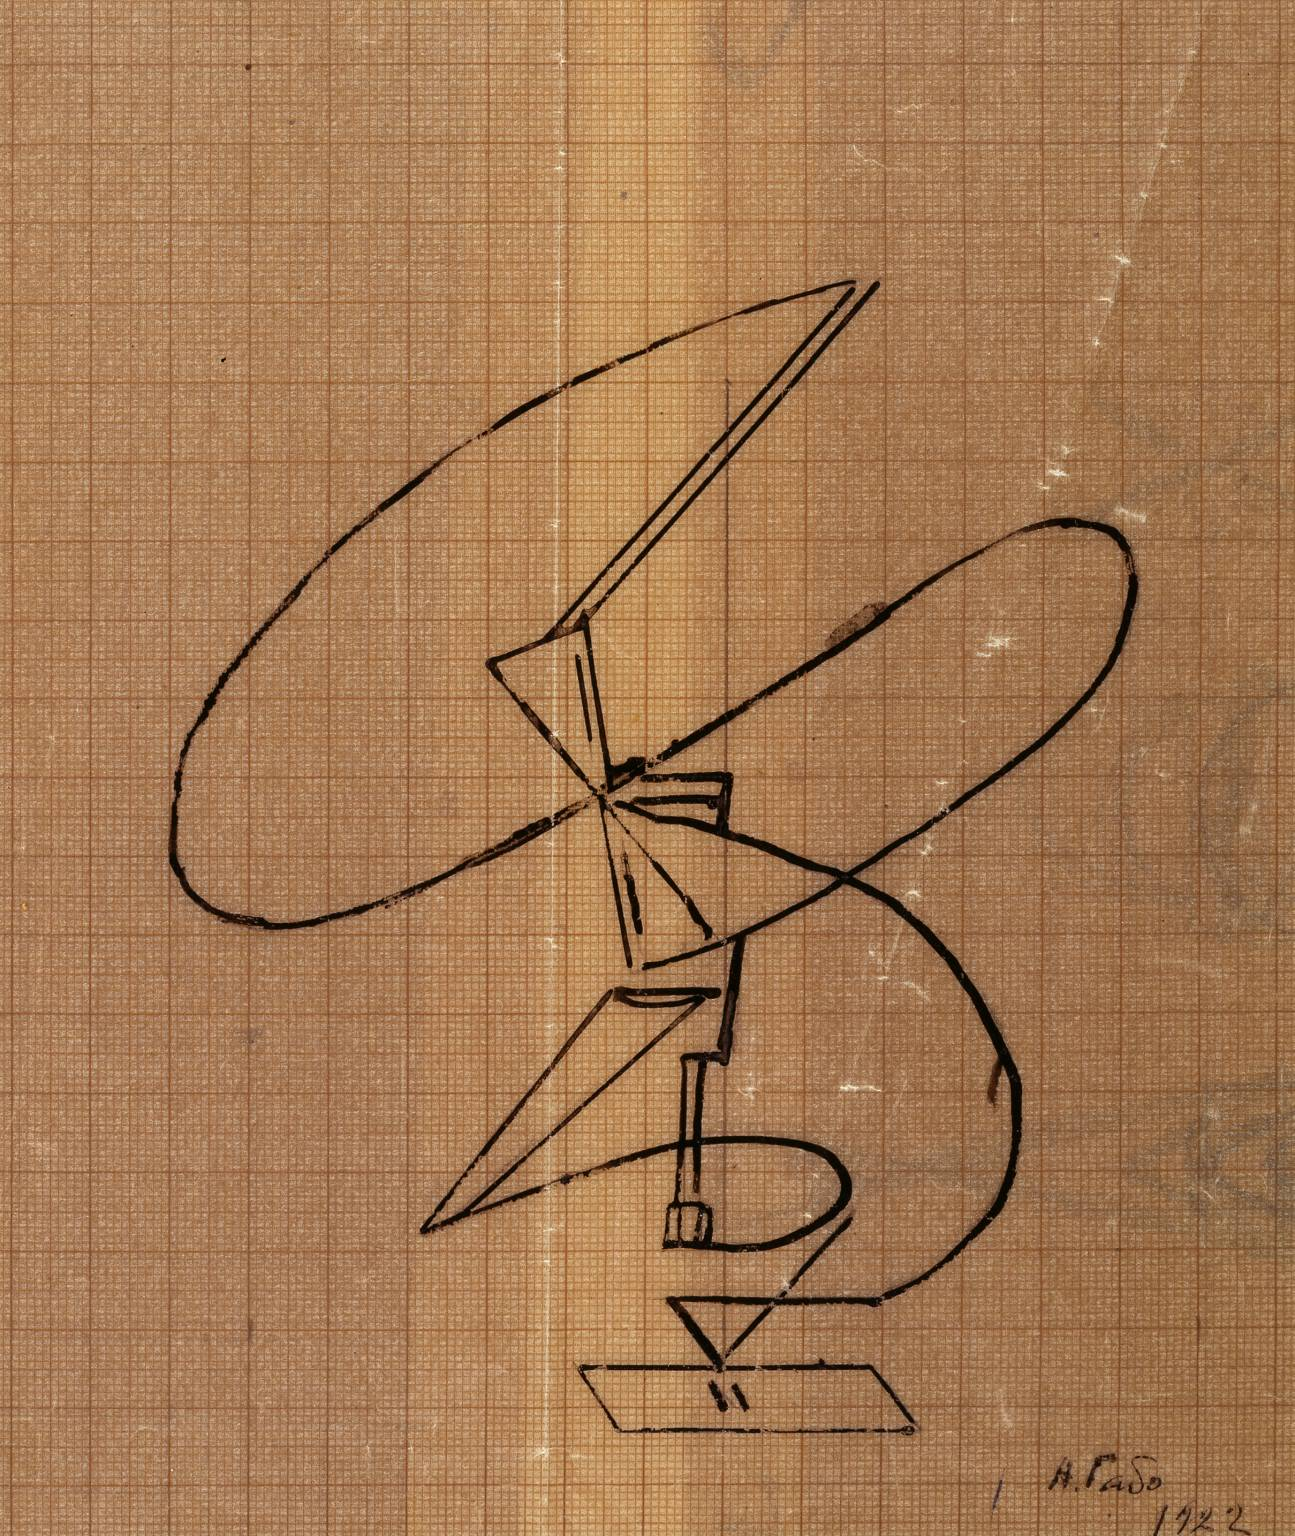 Naum Gabo,  Sketch for a Kinetic Construction , 1922, Tate Britain.